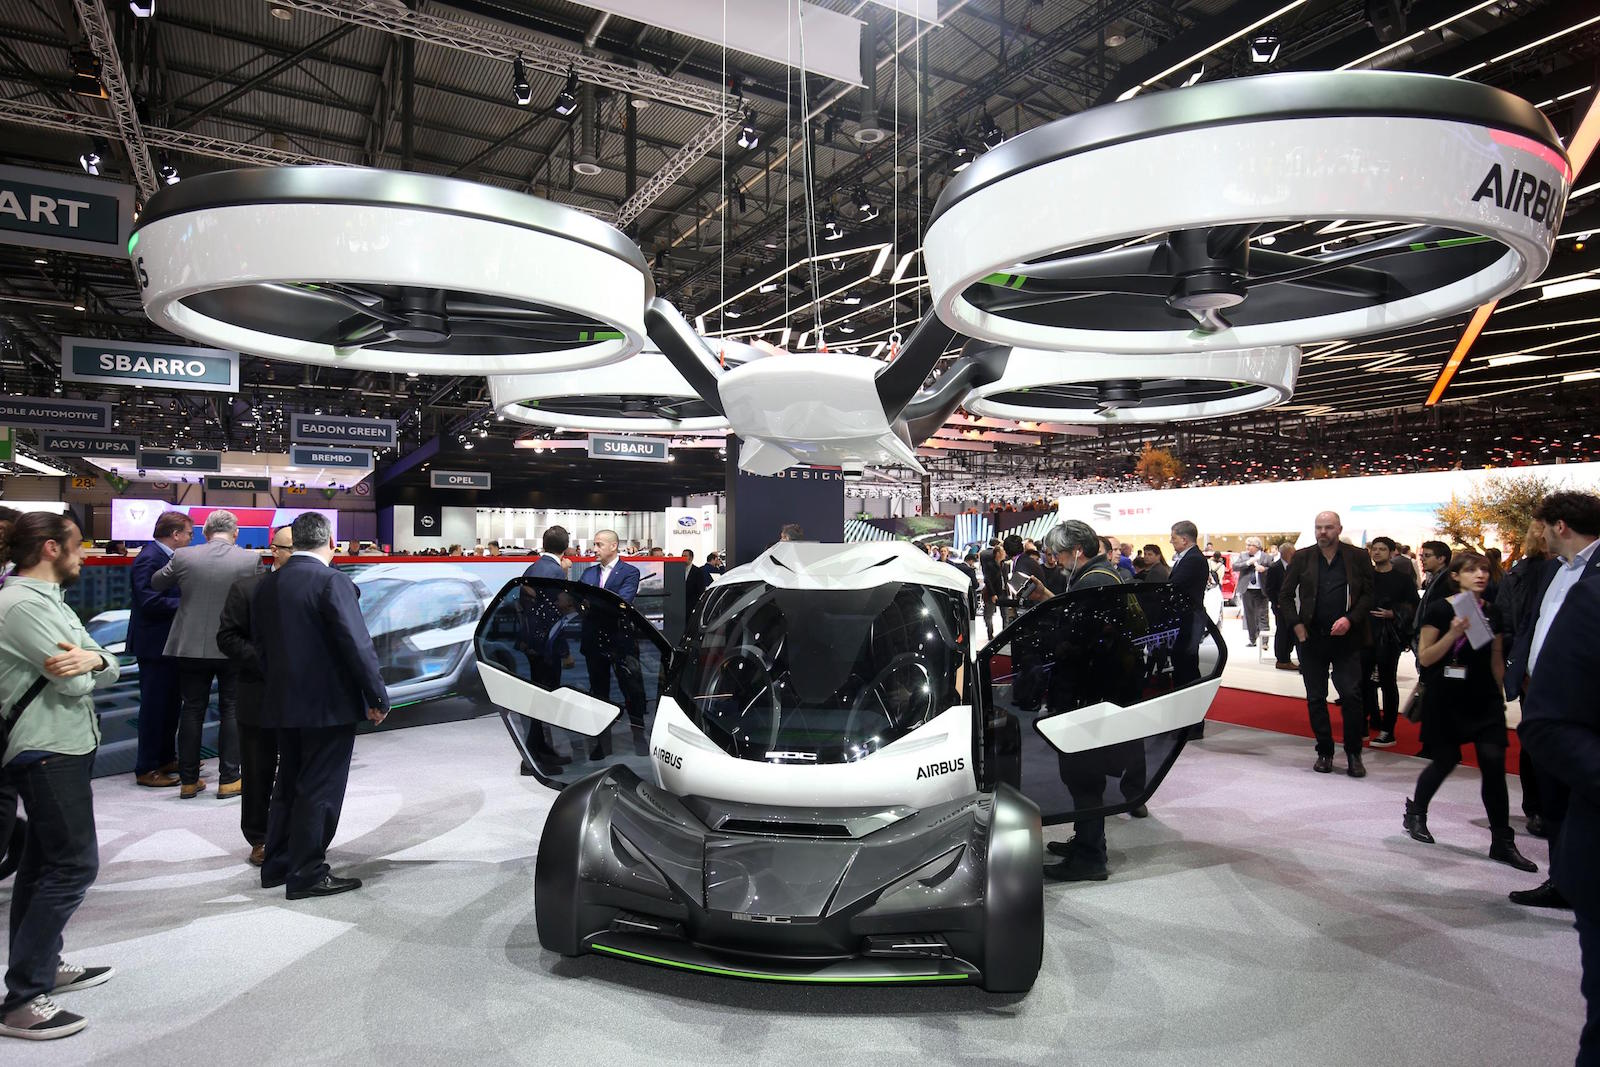 When The Vehicle Encounters Congestion A Drone With Eight Rotor Blades Can Be Summoned To Unburden Rolling Chassis Of Passenger Pod And Carry It